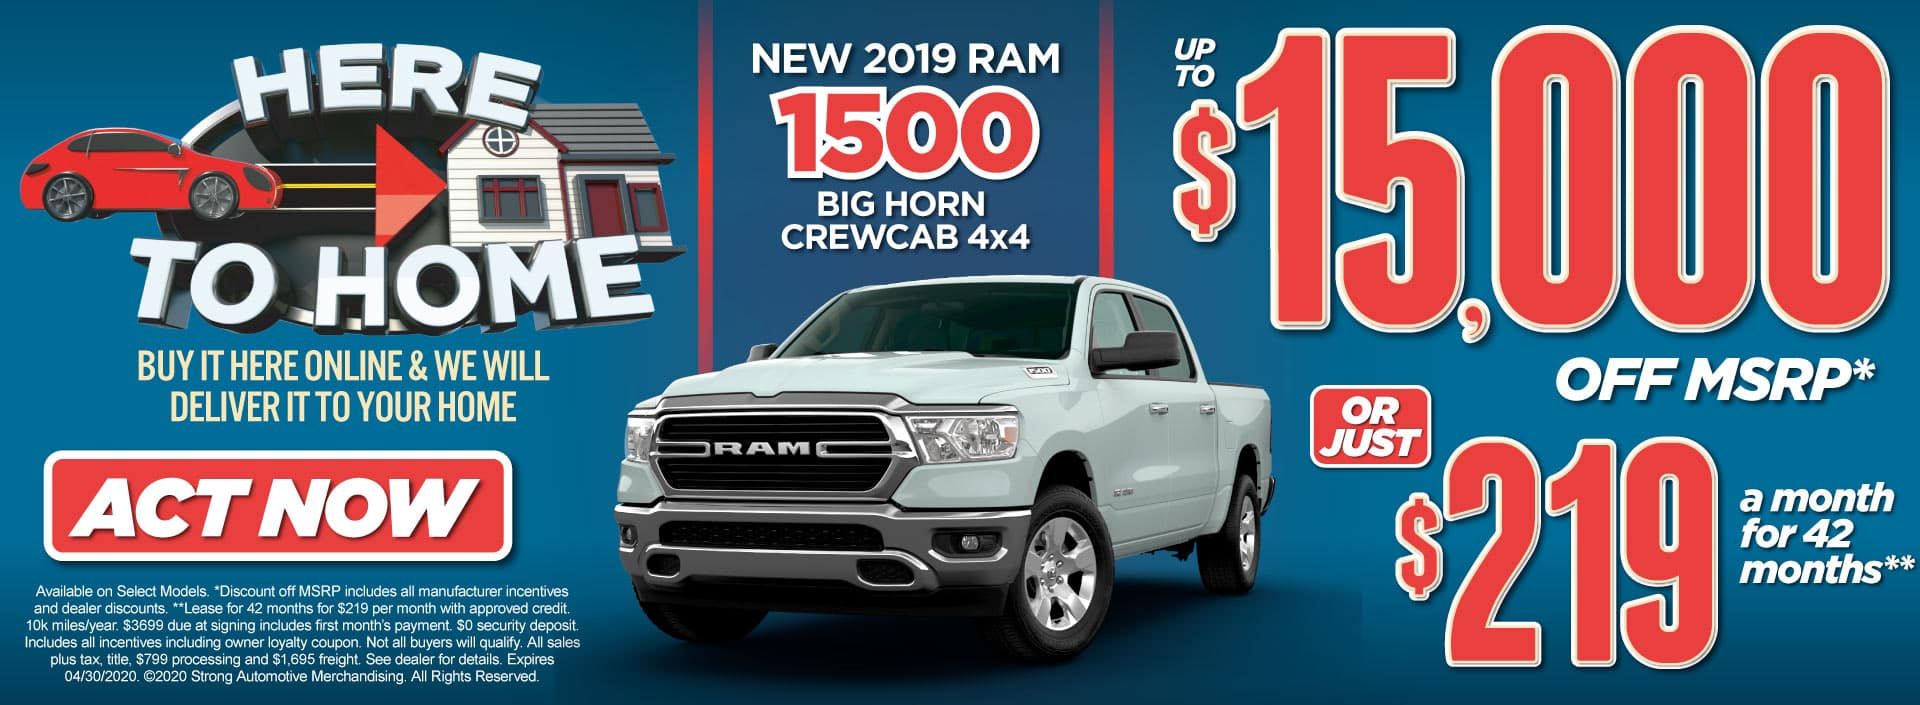 New 2019 Ram 1500 Special Act Now